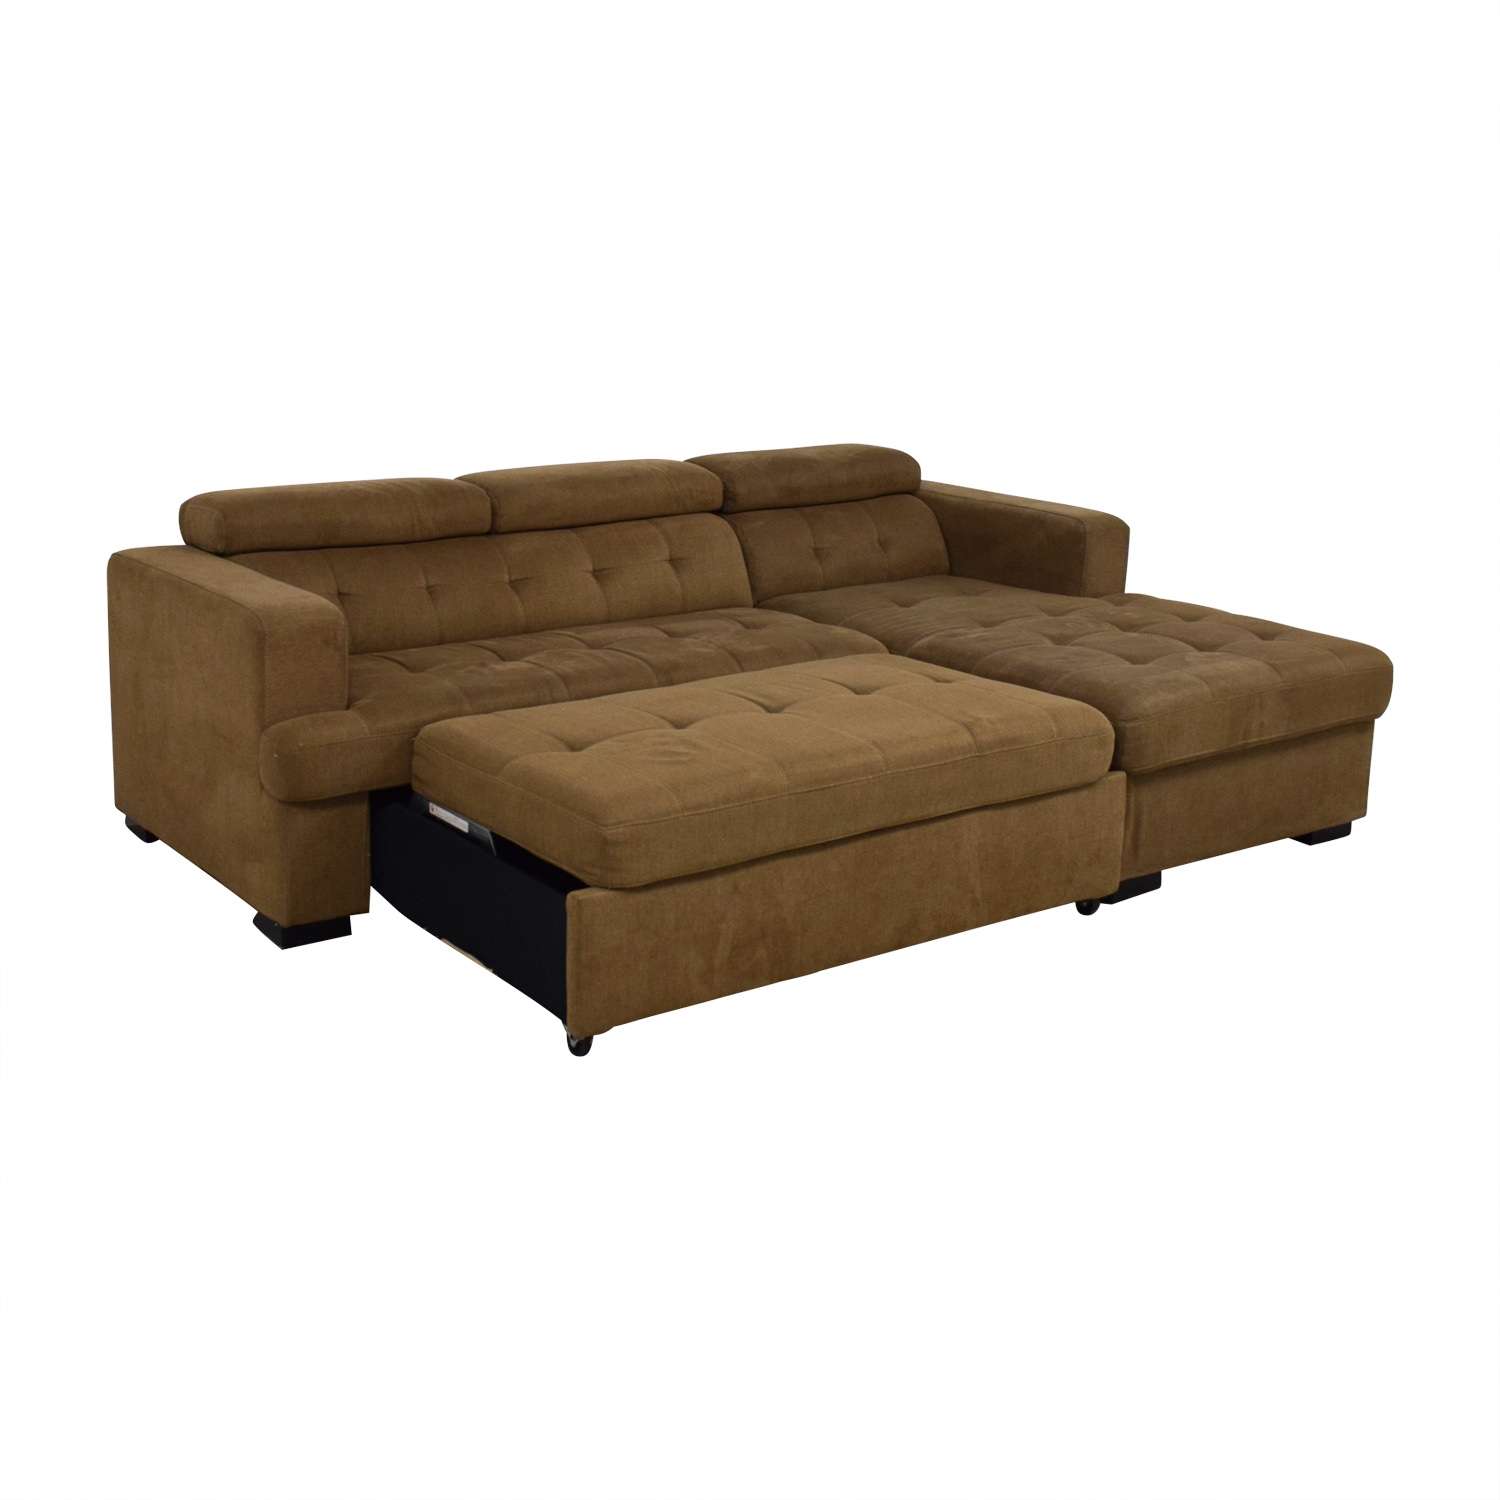 Bob's Furniture Brown Sectional with Chaise Storage Bob's Furniture